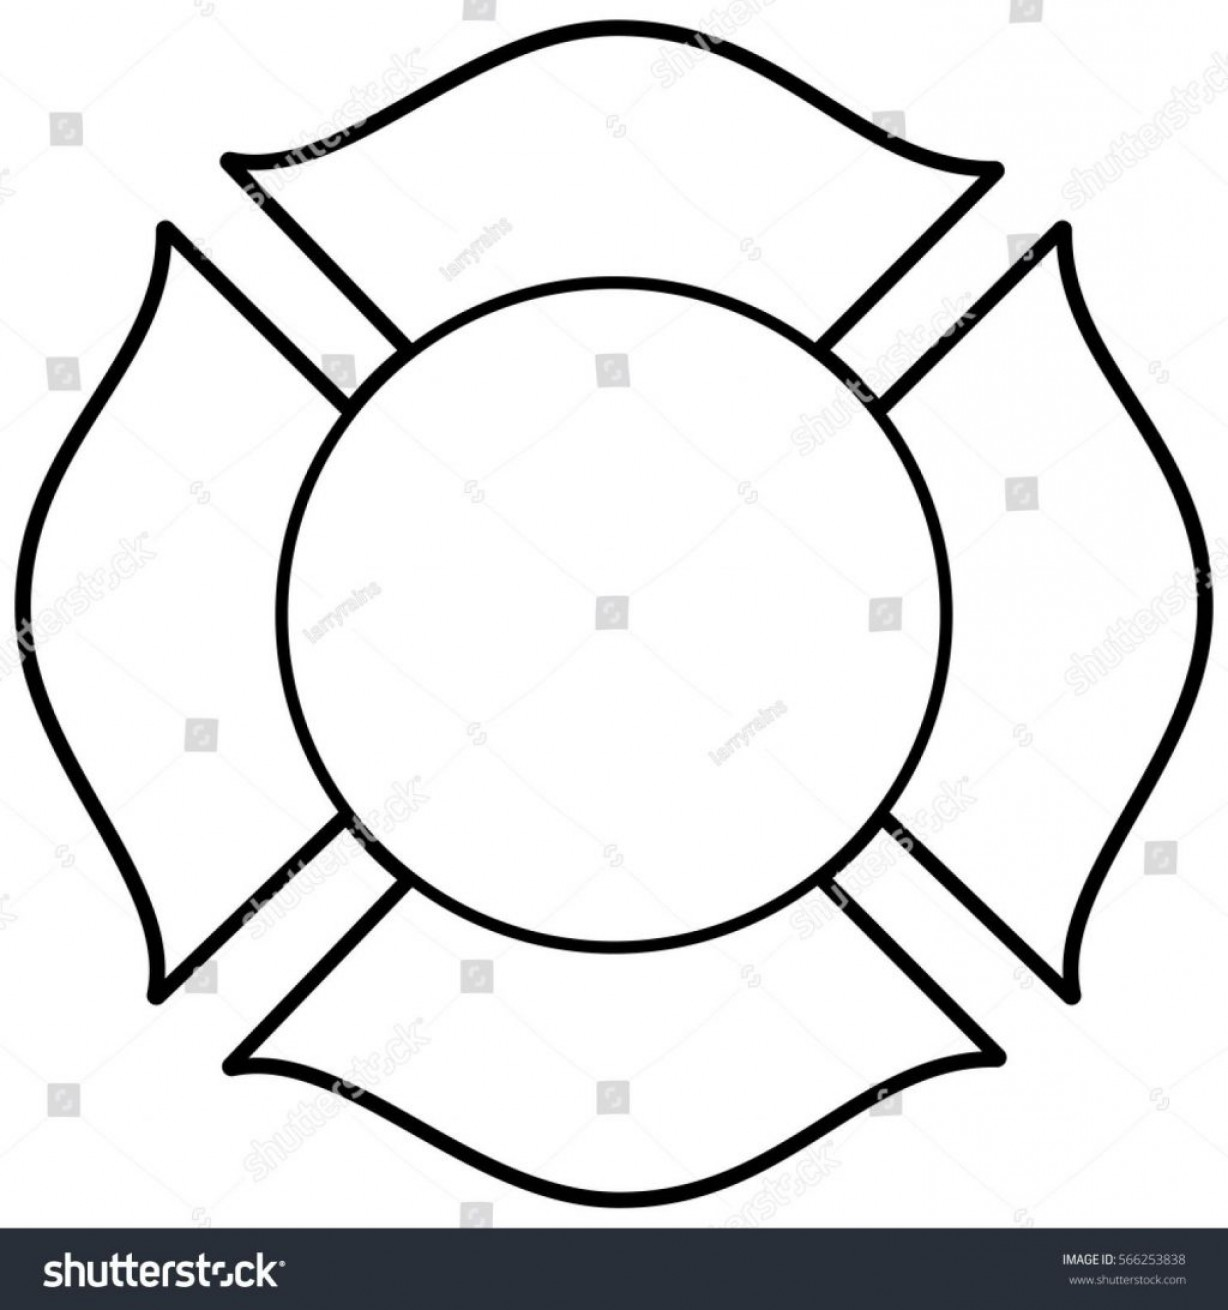 Fire Maltese Vector: Best Stock Vector Firefighter Maltese Cross Illustration Pictures